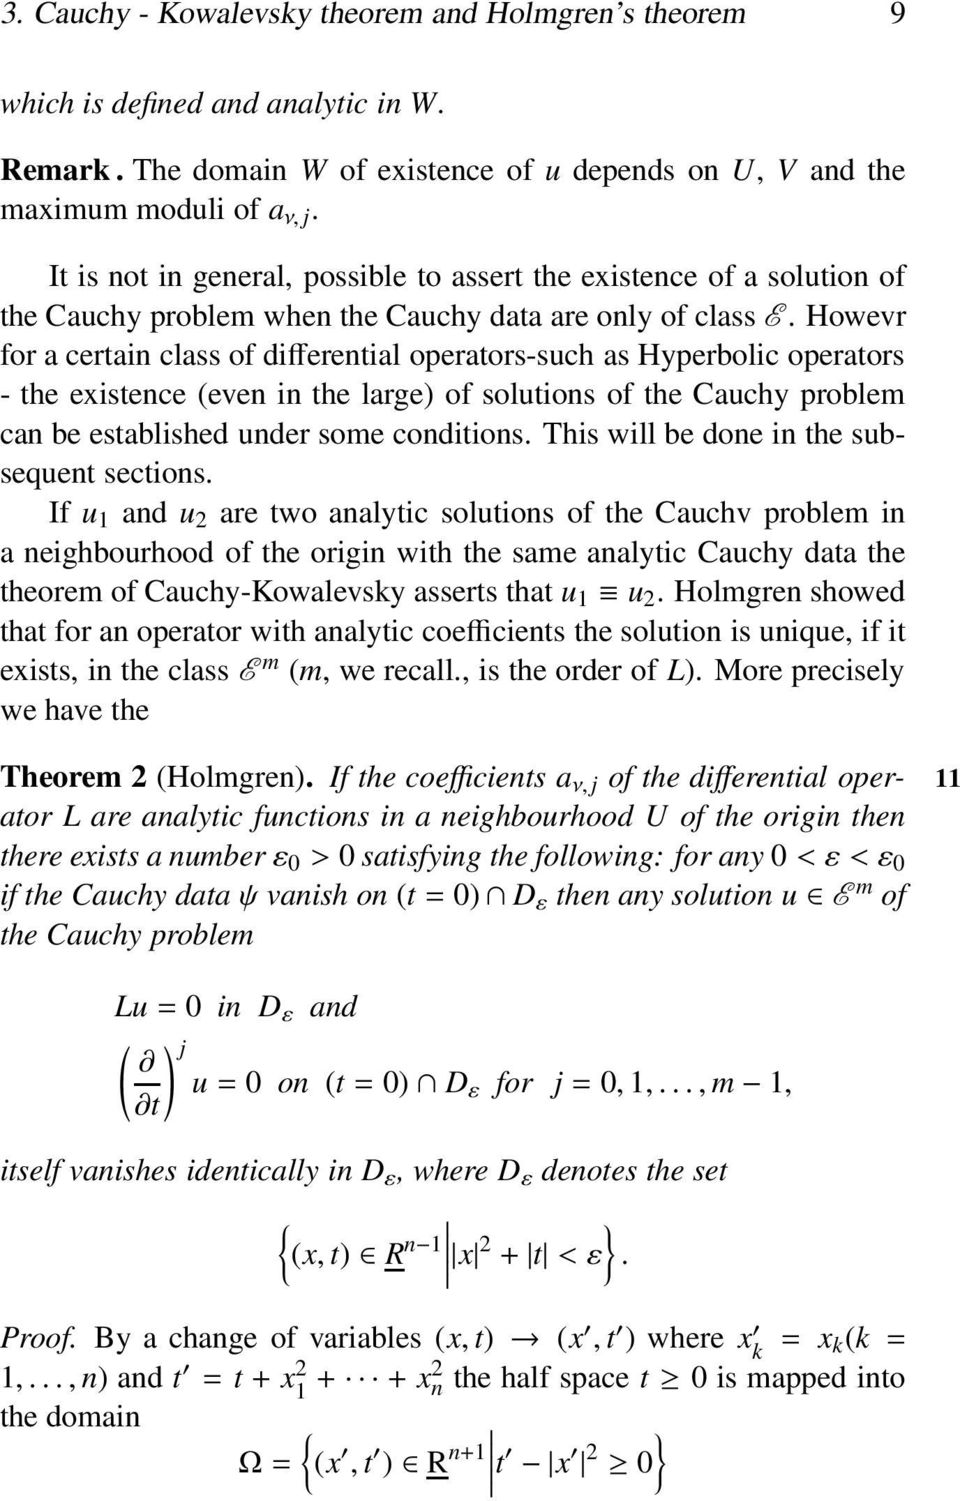 Howevr for a certain class of differential operators-such as Hyperbolic operators - the existence (even in the large) of solutions of the Cauchy problem can be established under some conditions.